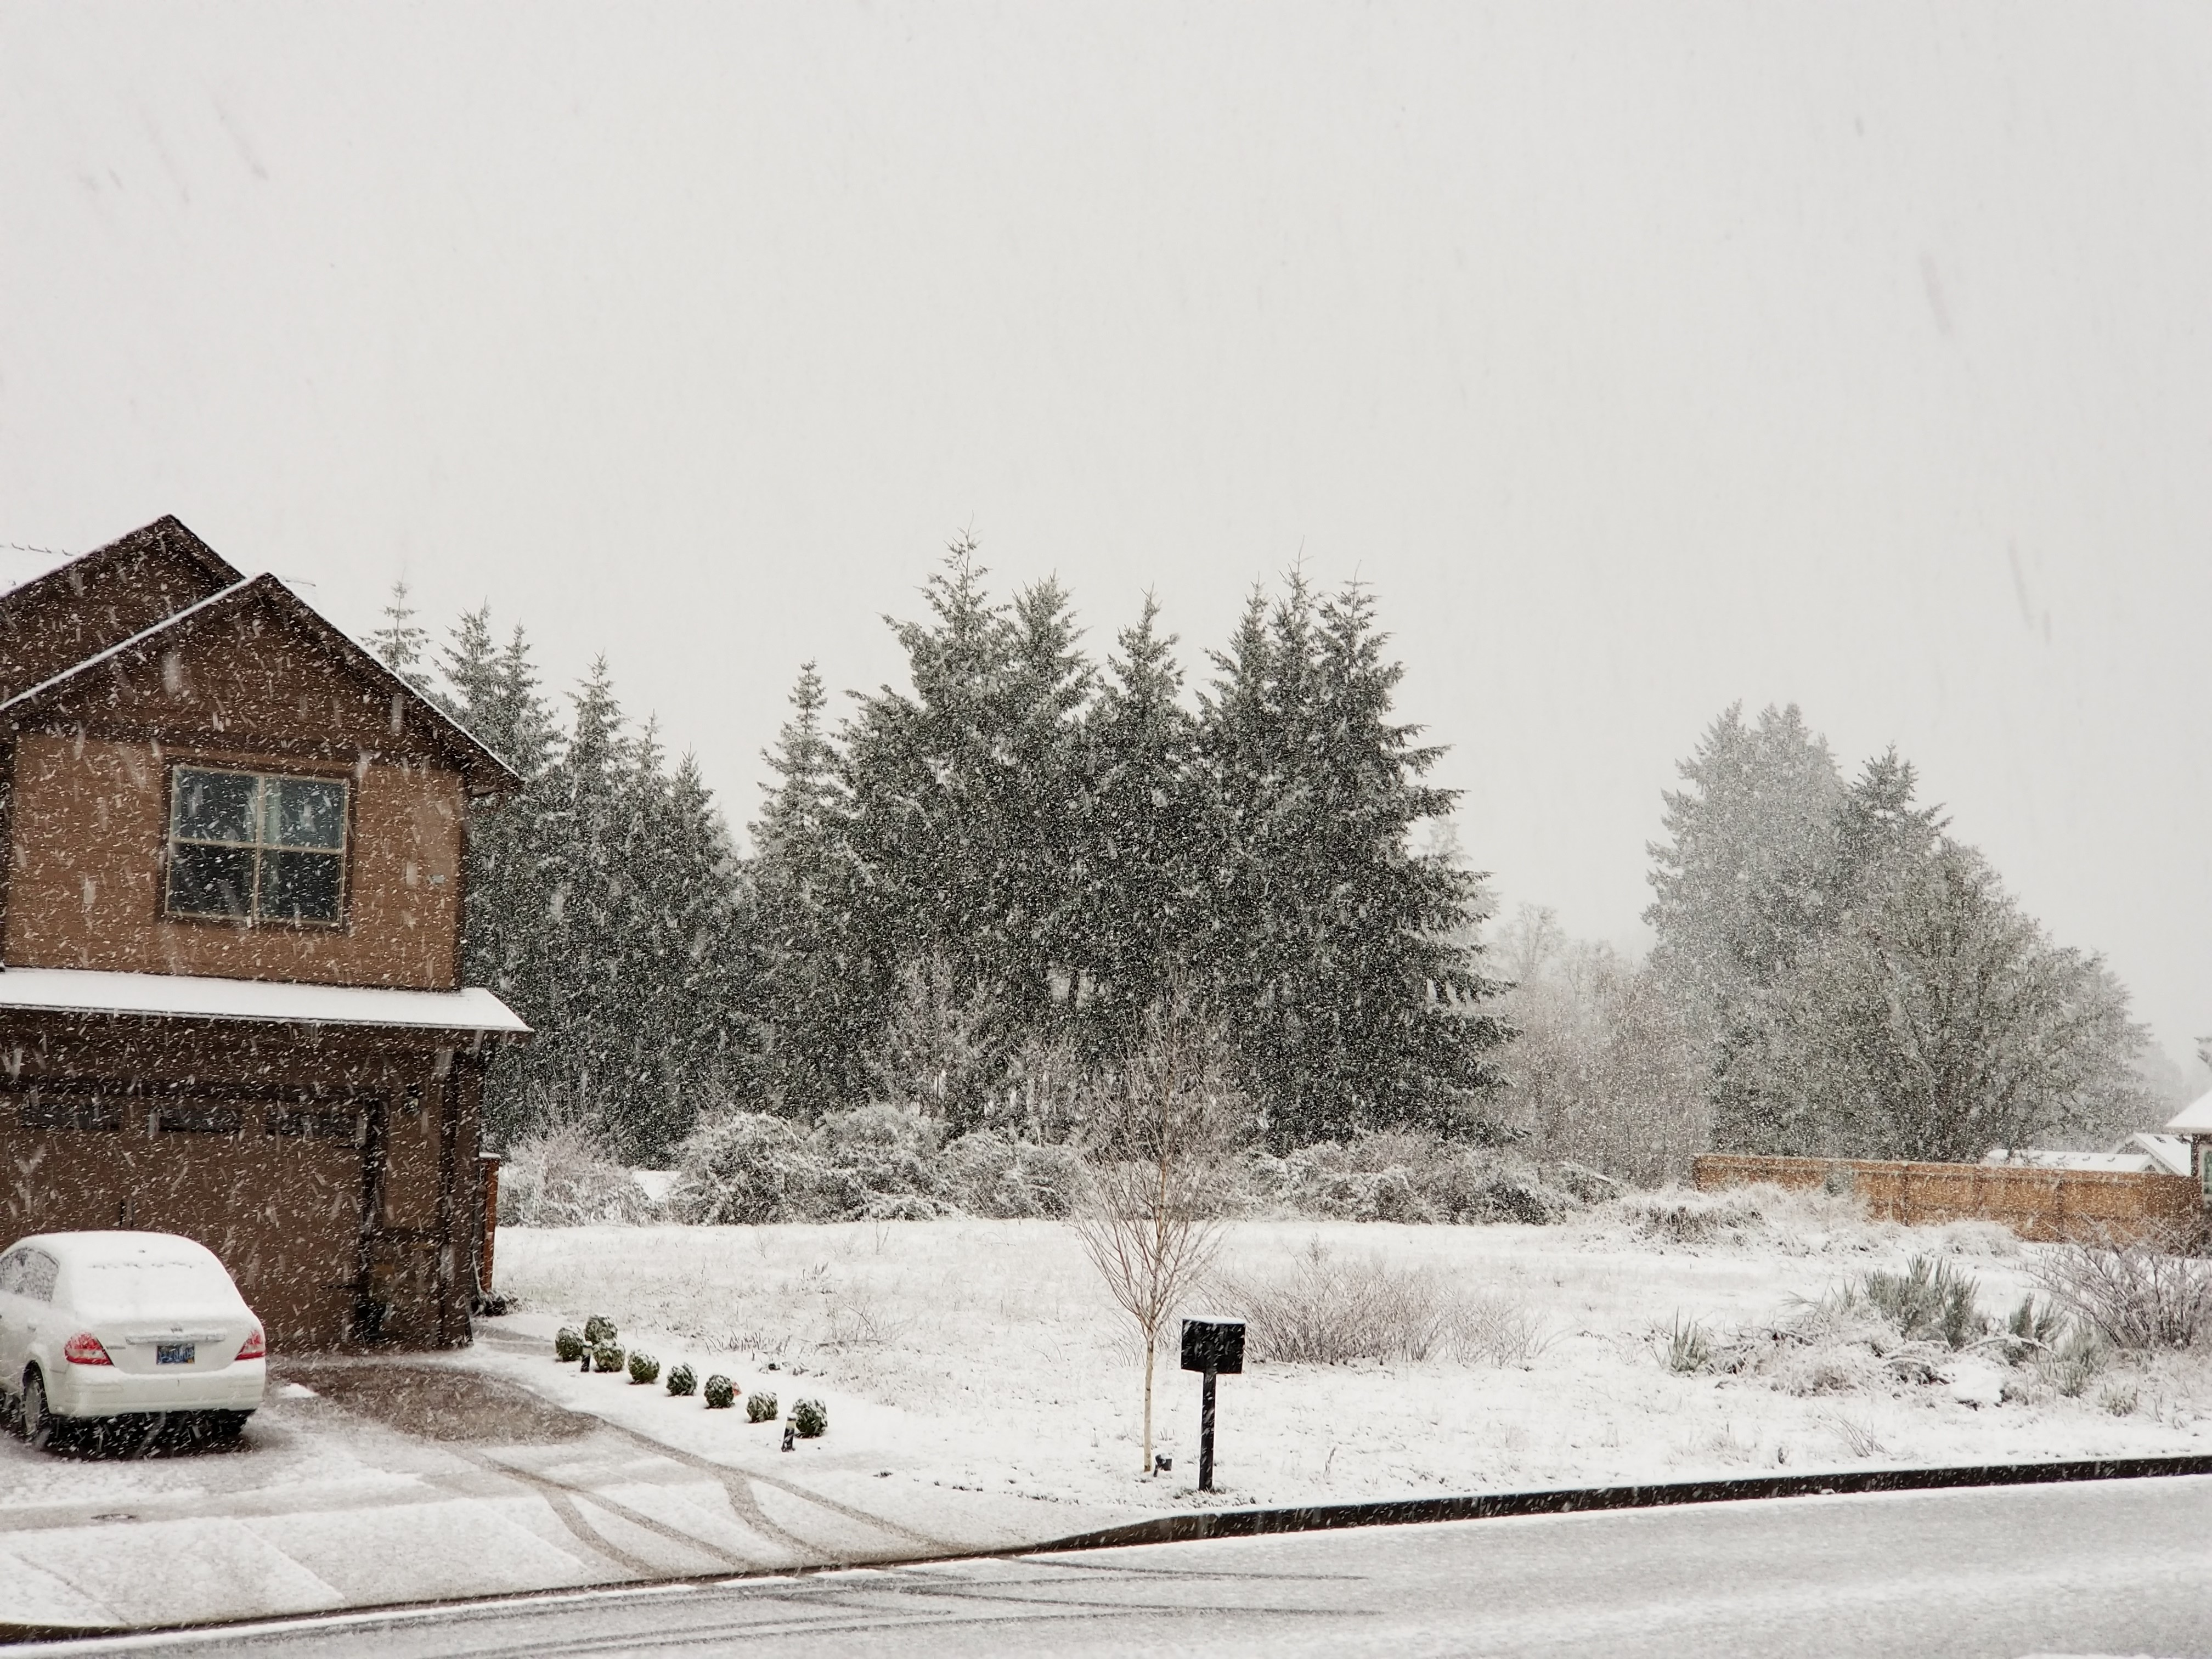 Have some snow photos? Send them to us on burst.com/katu and we will air them on KATU News!